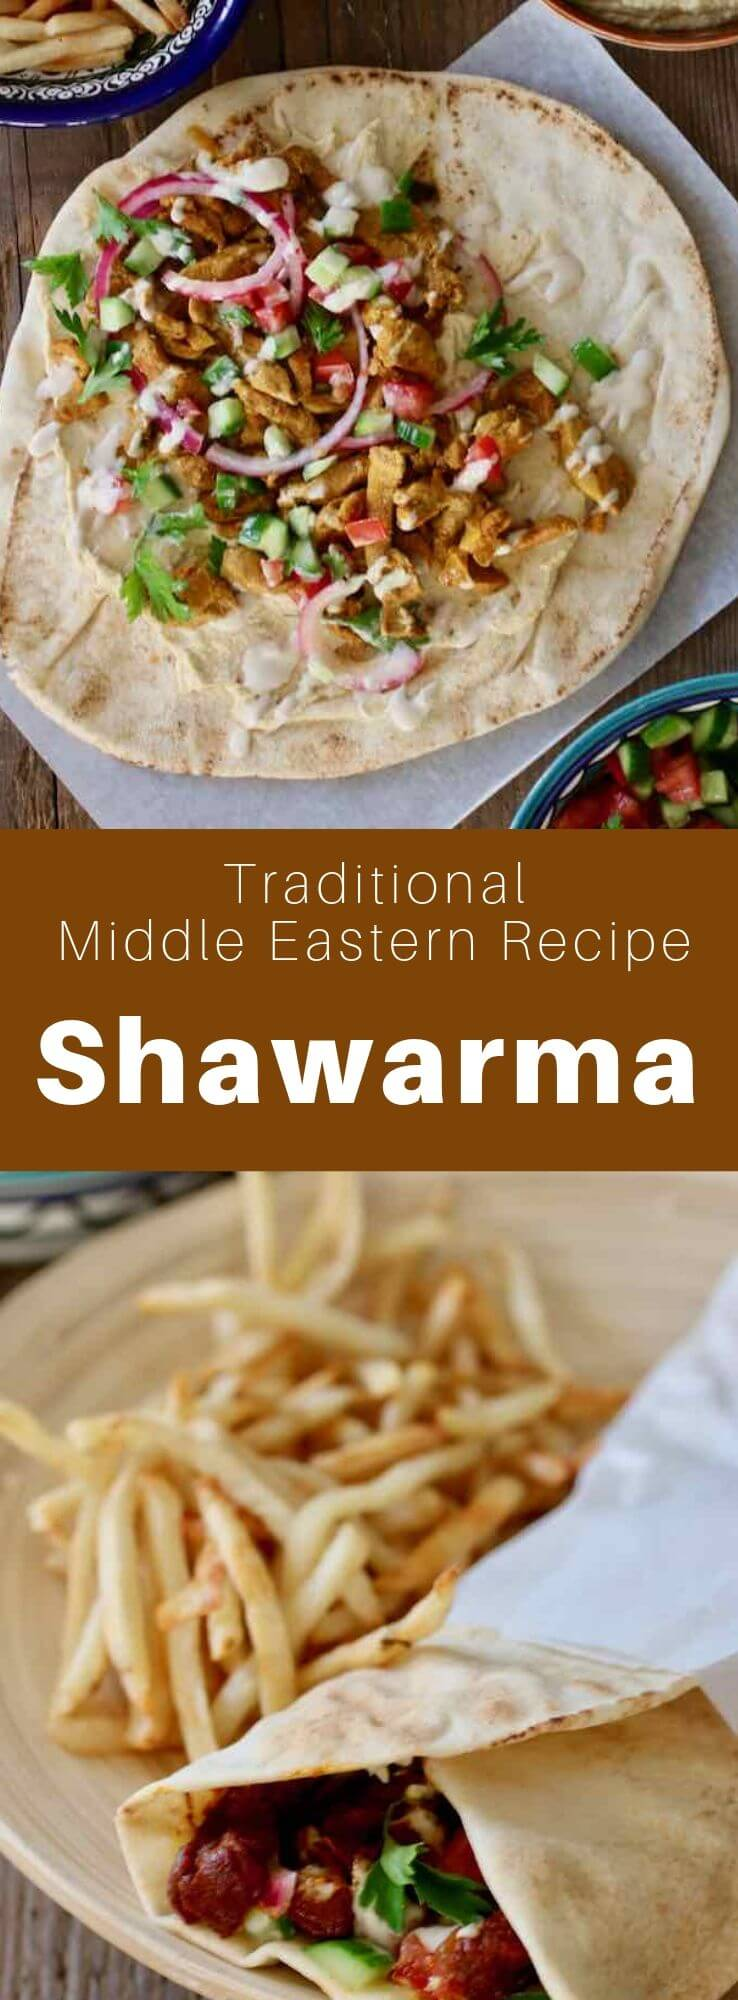 Shawarma is a popular dish in Syria, Turkey, Lebanon, Egypt and Israel. It is often eaten as a sandwich in pita bread. It can be made from marinated slow-roasted lamb, chicken or beef. #MiddleEasternCuisine #MiddleEasternRecipe #MiddleEasternFood #ArabCuisine #ArabRecipe #ArabFood #JewishFood #JewishCuisine #JewishRecipe #WorldCuisine #196flavors